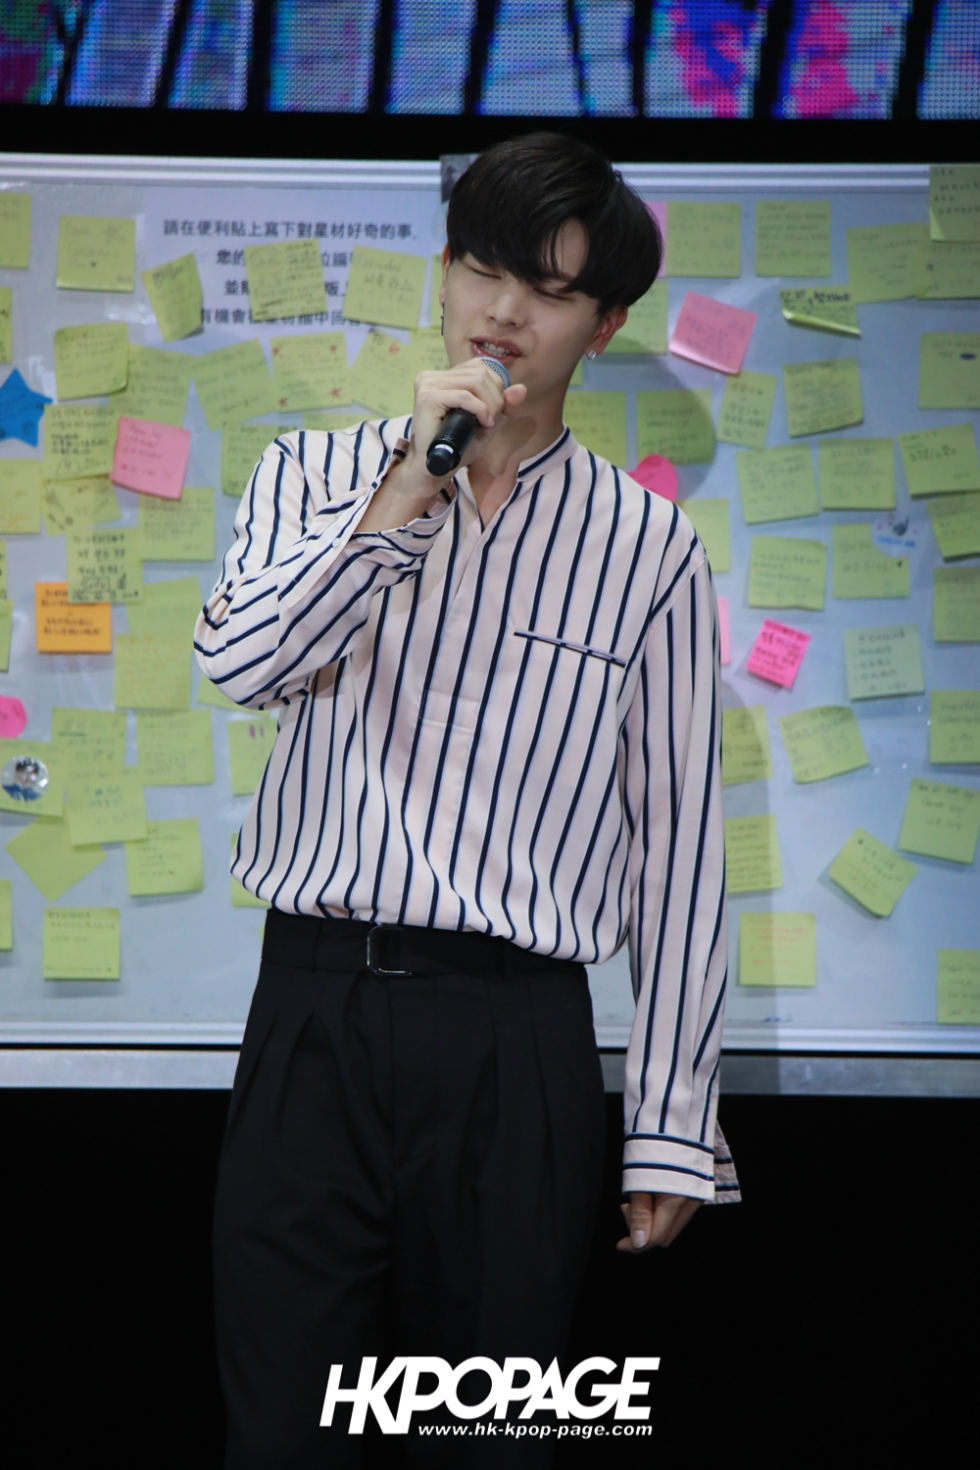 "[HK.KPOP.PAGE] 180519_Yook Sung Jae""Paradise""Fan Meeting in Hong Kong_11"